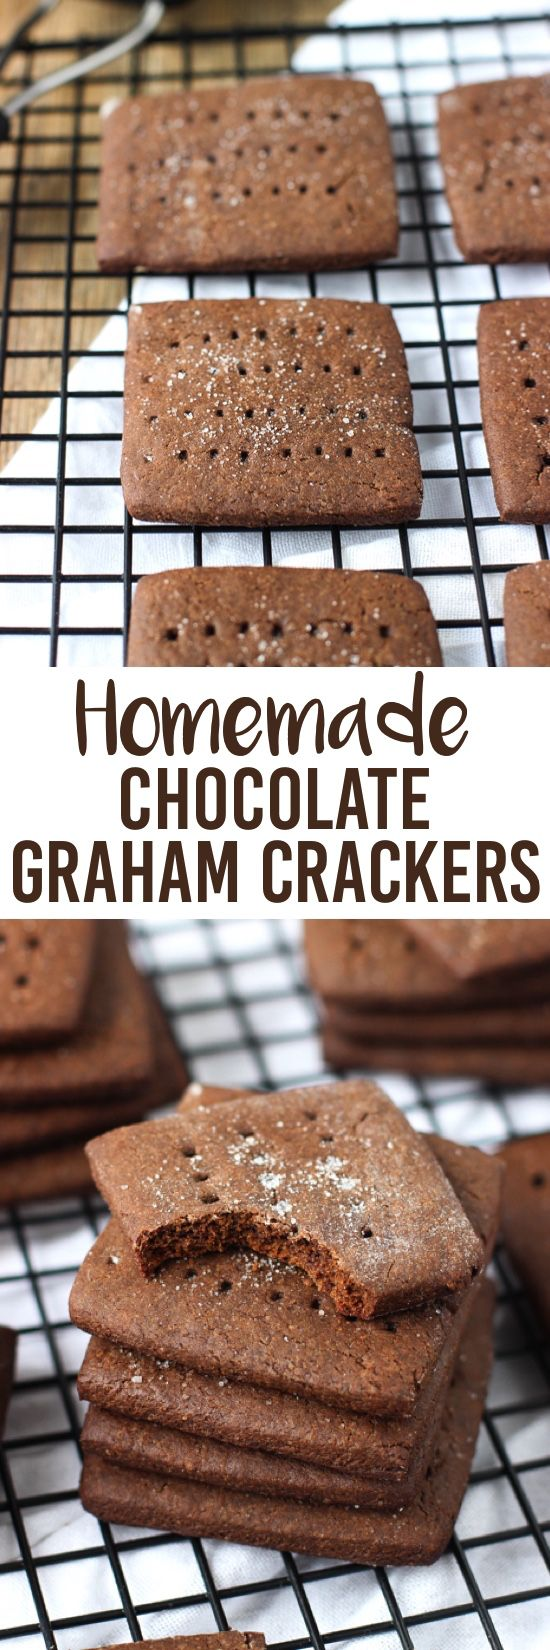 A recipe for homemade chocolate graham crackers - not too sweet with a deep chocolate flavor! Great to eat on their own or in s'mores!